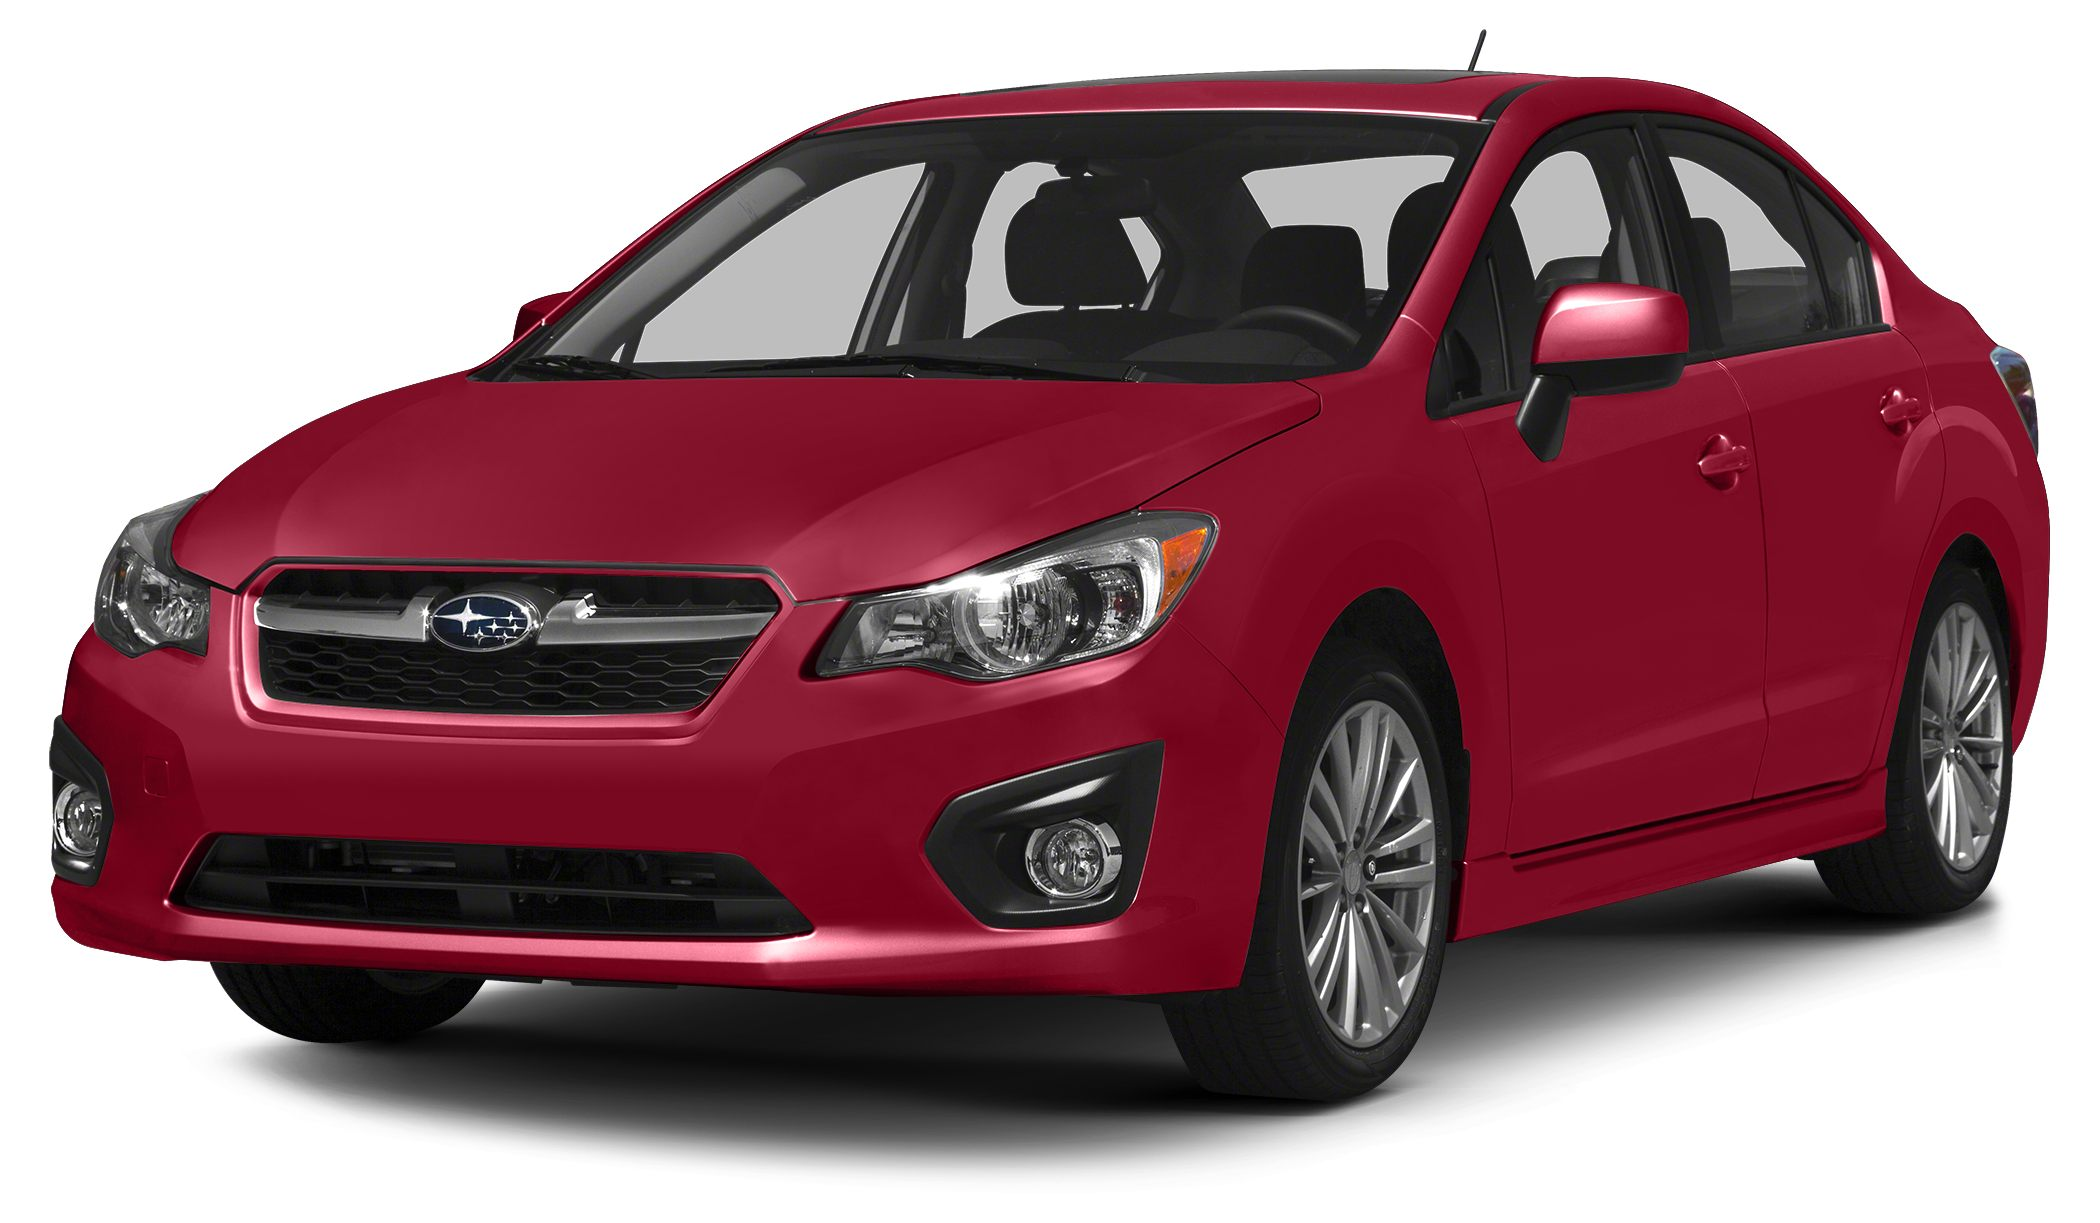 2014 Subaru Impreza 20i WE SELL OUR VEHICLES AT WHOLESALE PRICES AND STAND BEHIND OUR CARS